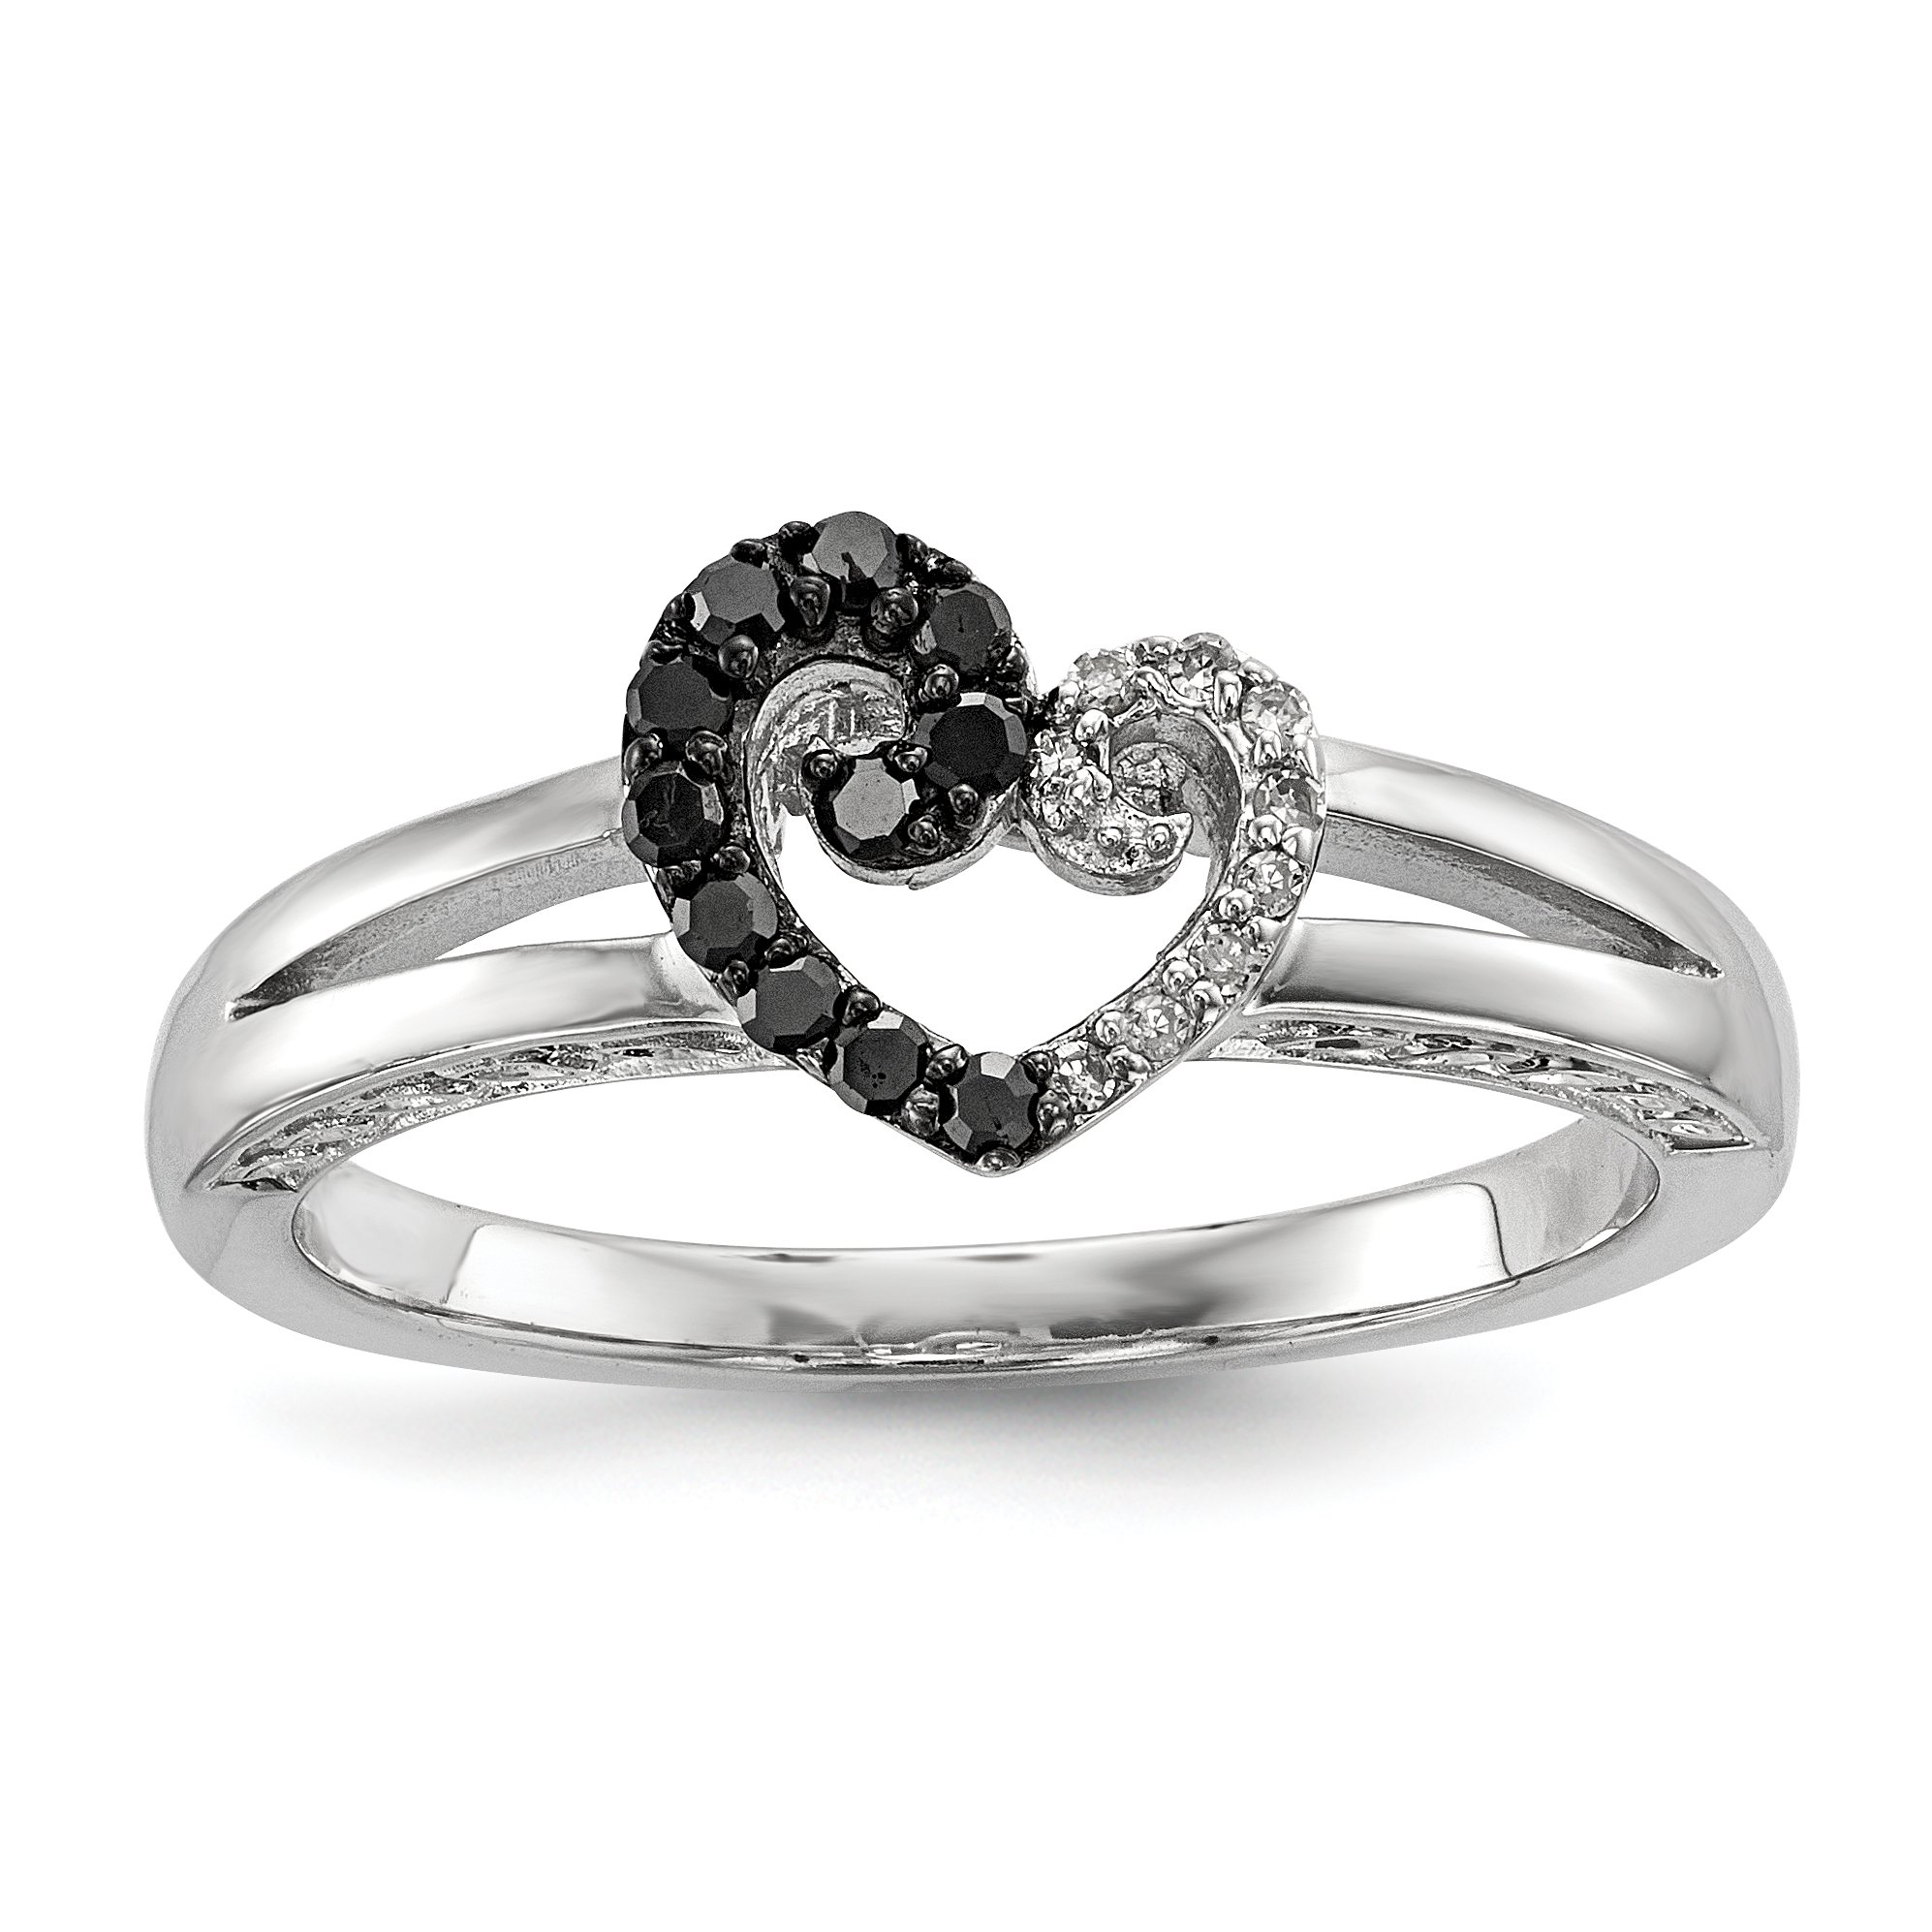 ICE CARATS 925 Sterling Silver White Black Diamond Heart Band Ring Size 7.00 S/love Fine Jewelry Gift Set For Women Heart